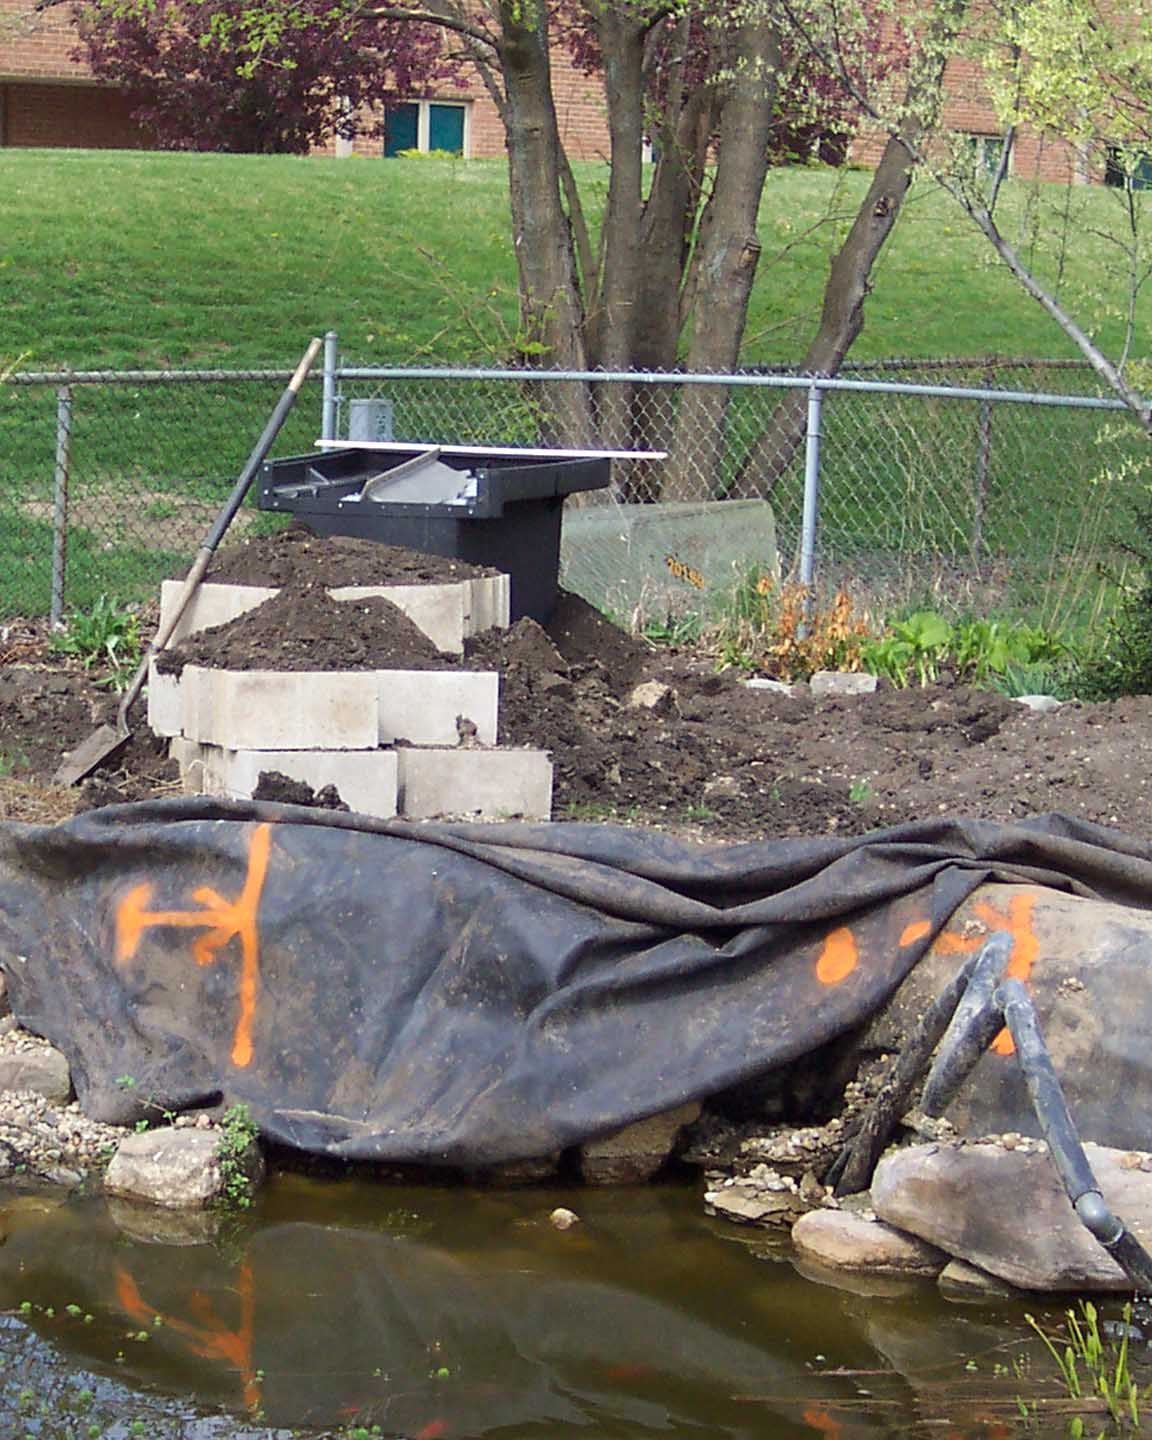 How to build a waterfall for my garden pond garden ftempo for Build your own waterfall pond